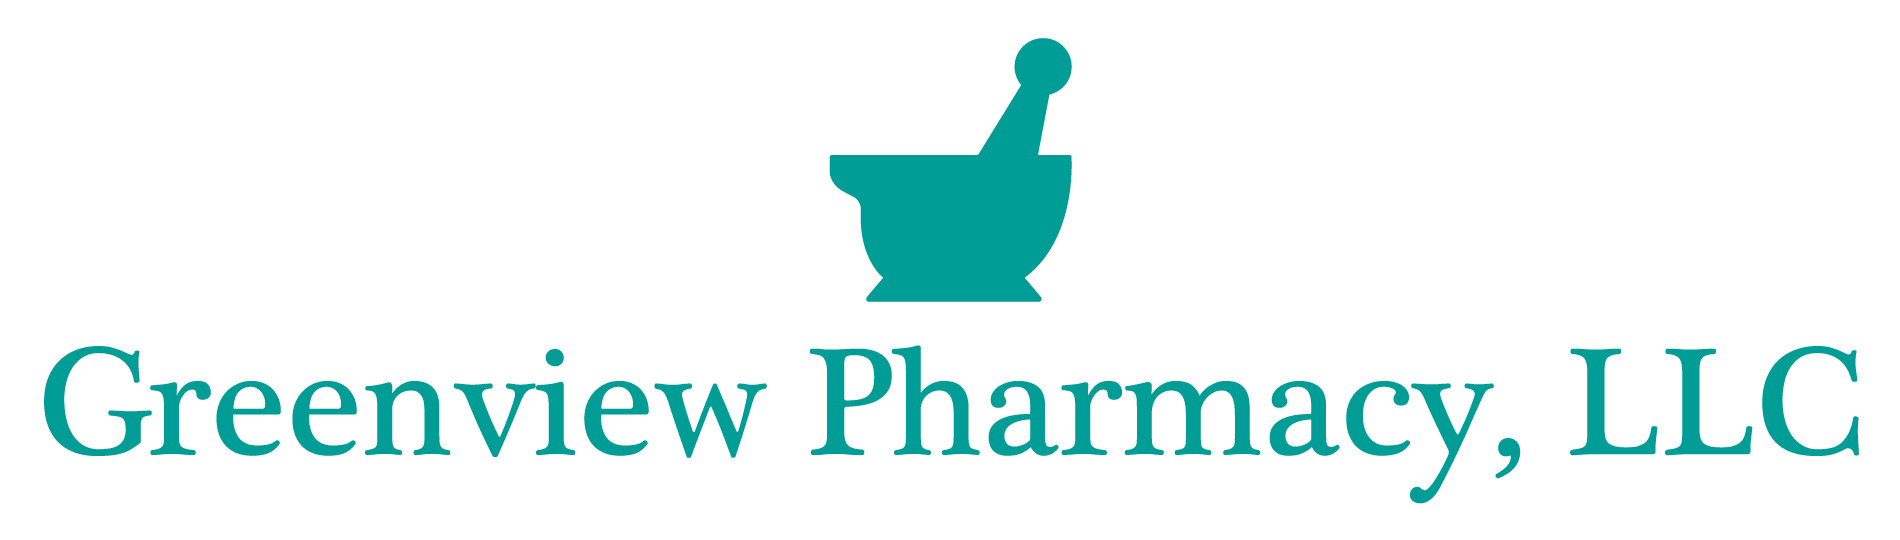 Greenview Pharmacy LLC